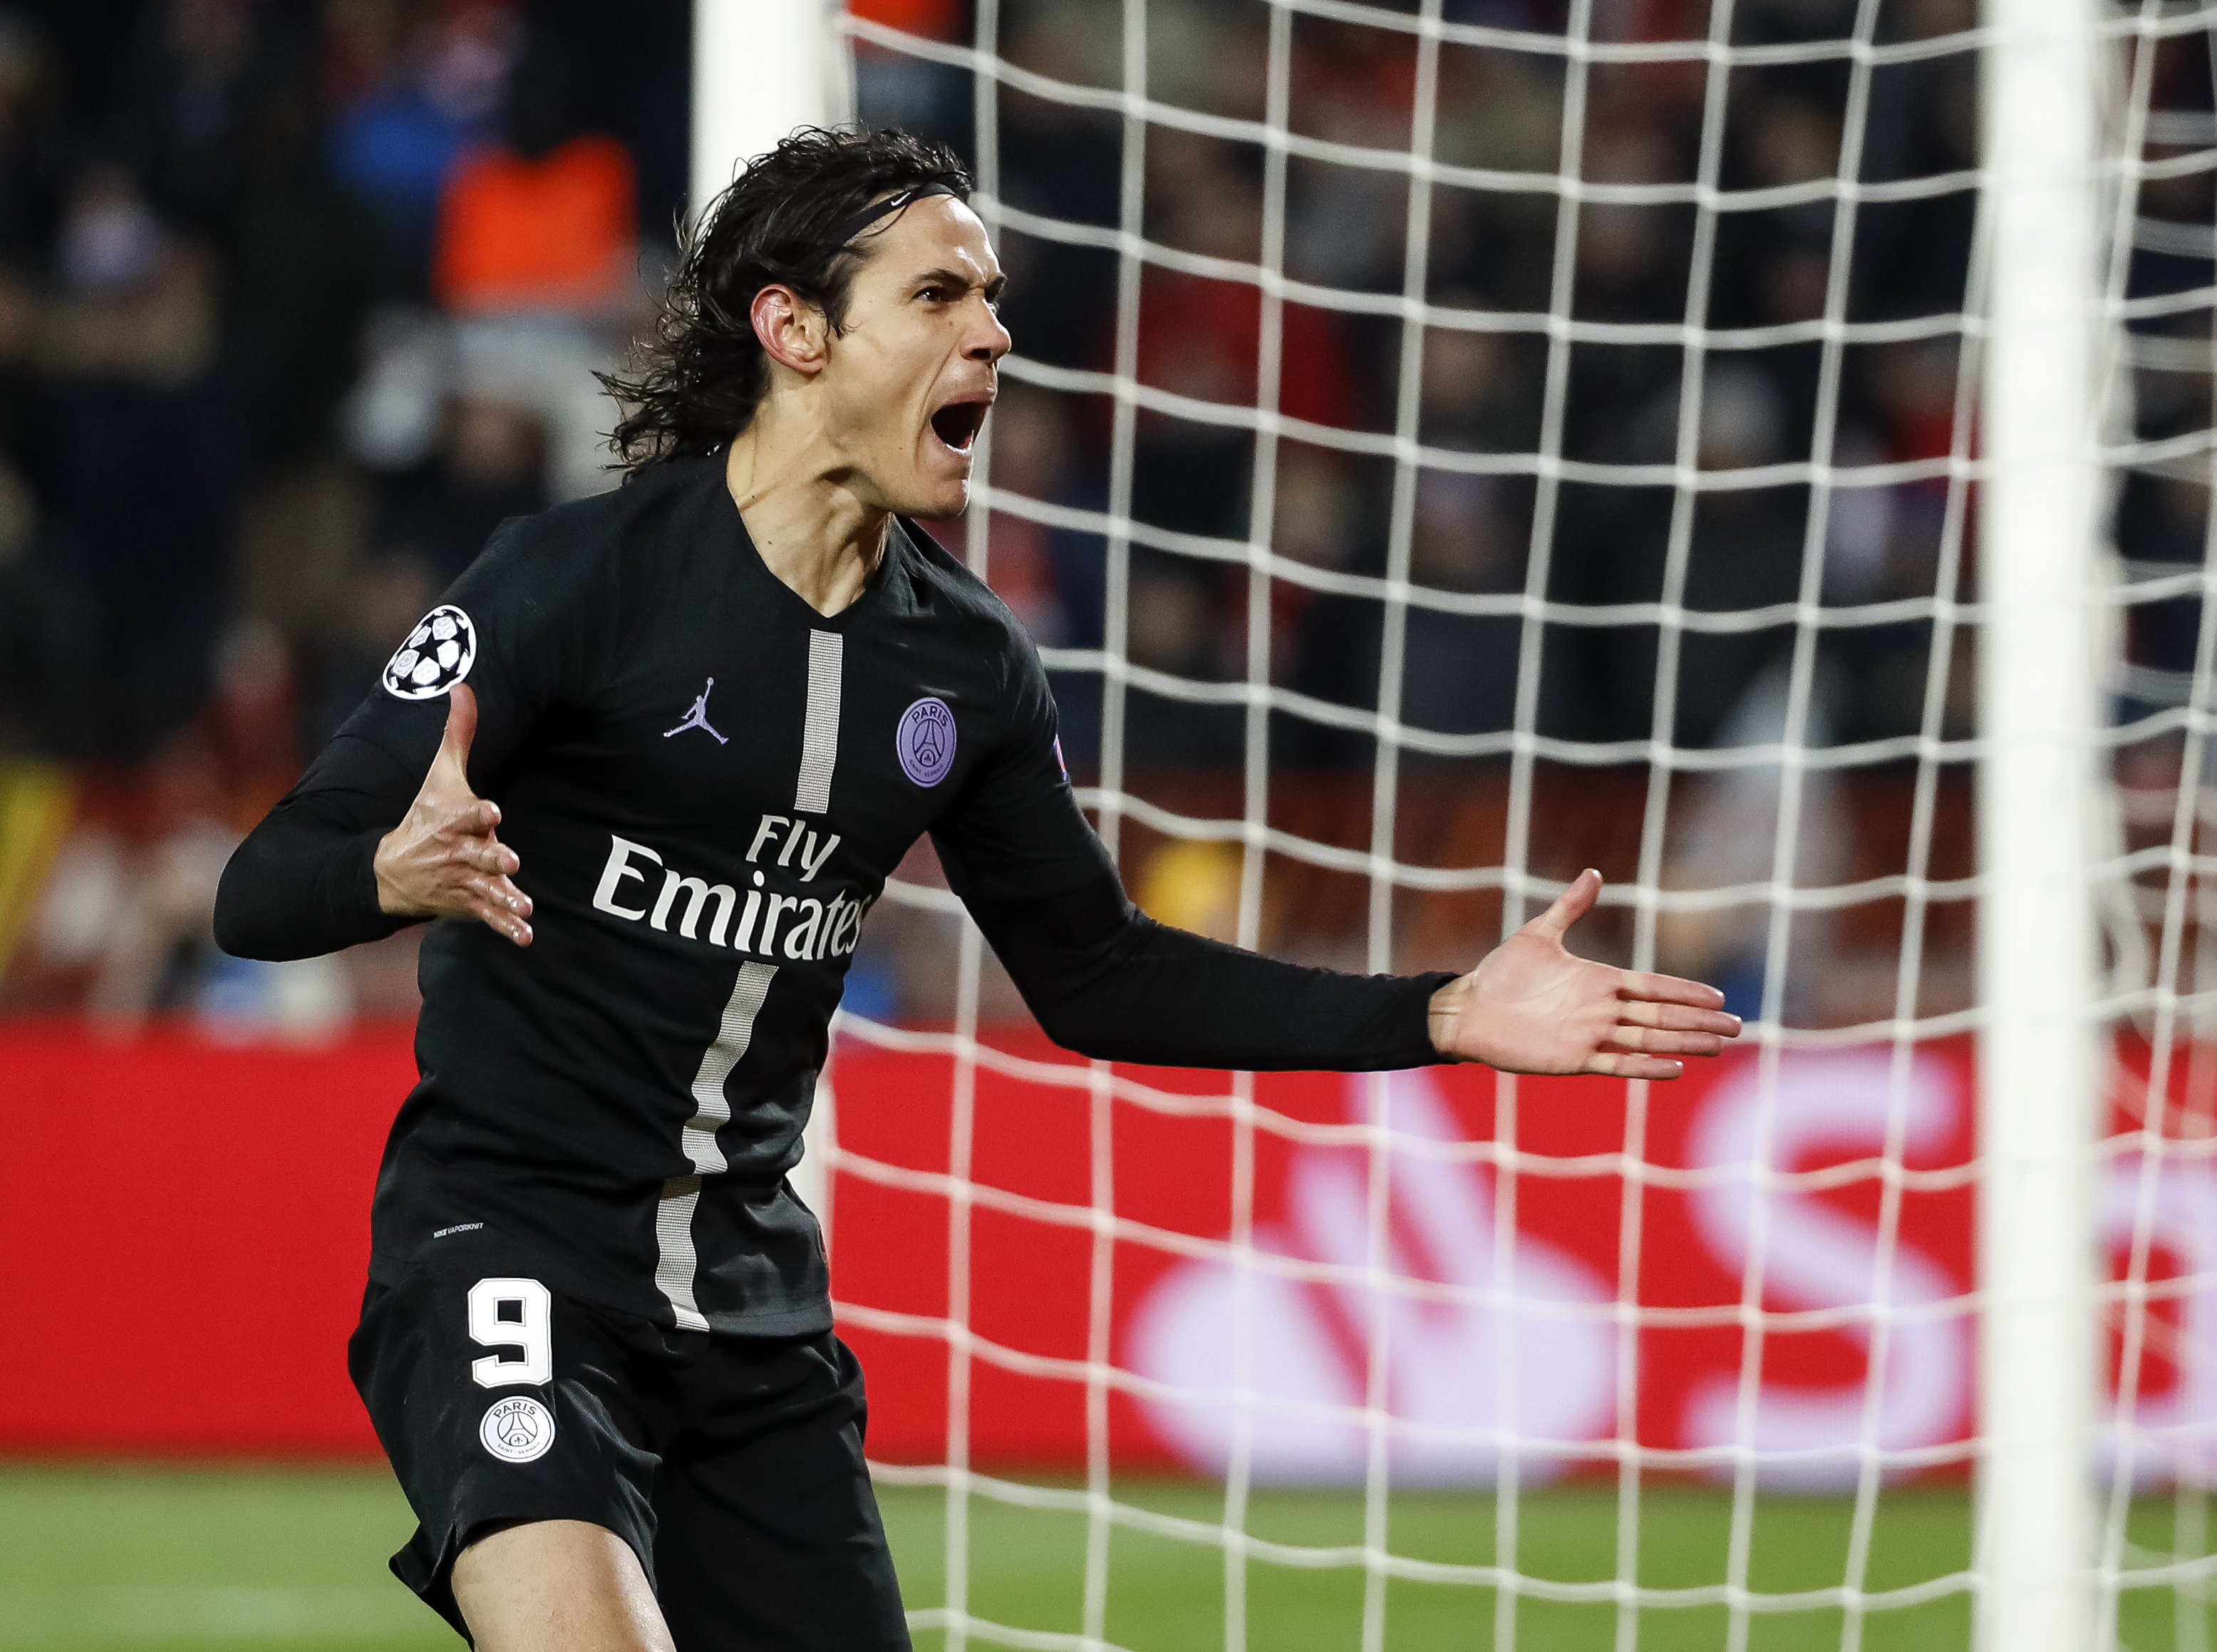 Paris Saint-Germain striker Edinson Cavani out of Manchester United match